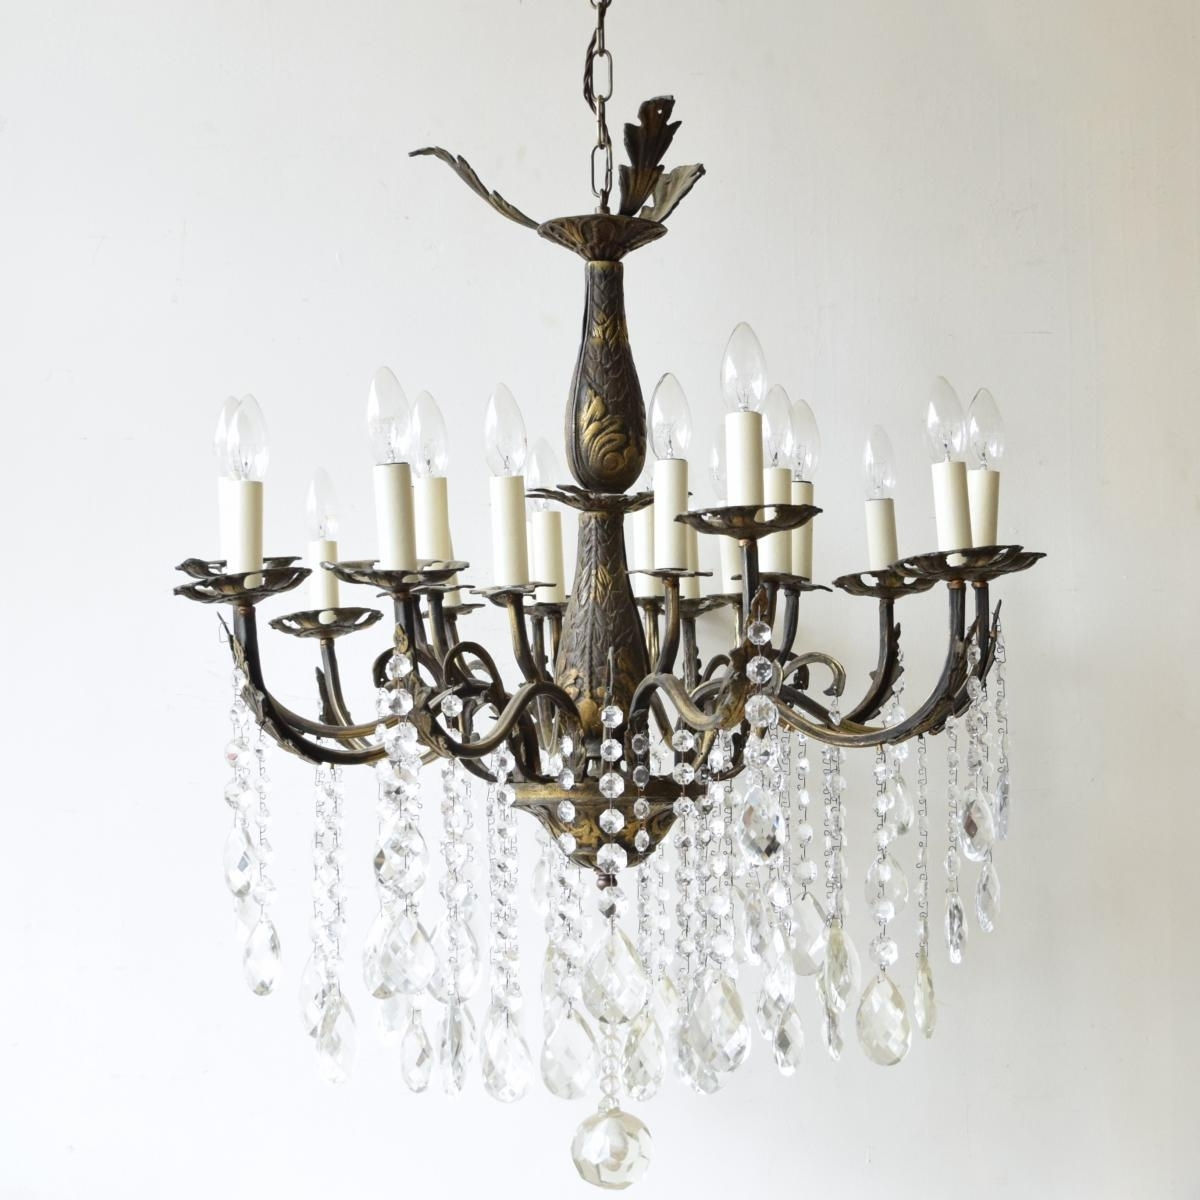 Large Vintage French 16 Light Brass Chandelier For Sale At Pamono With Popular Vintage Brass Chandeliers (View 8 of 15)